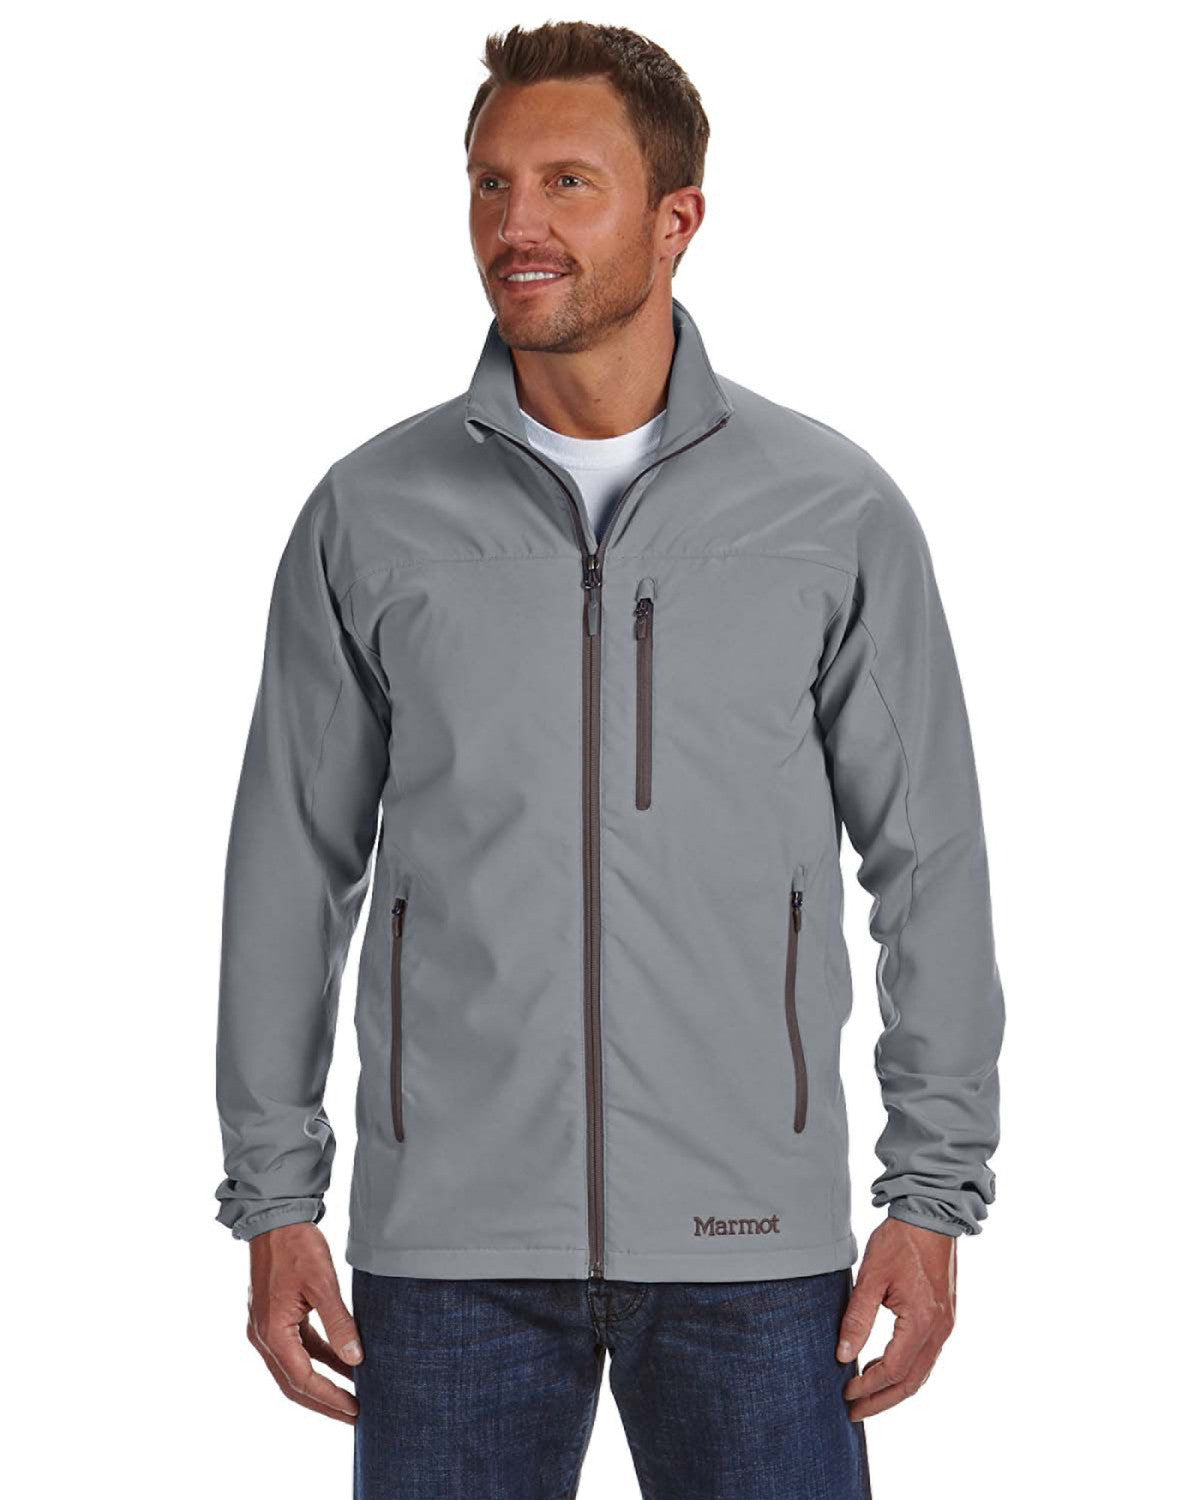 Marmot Men's Tempo Jacket - Graphic Comfort  - 2